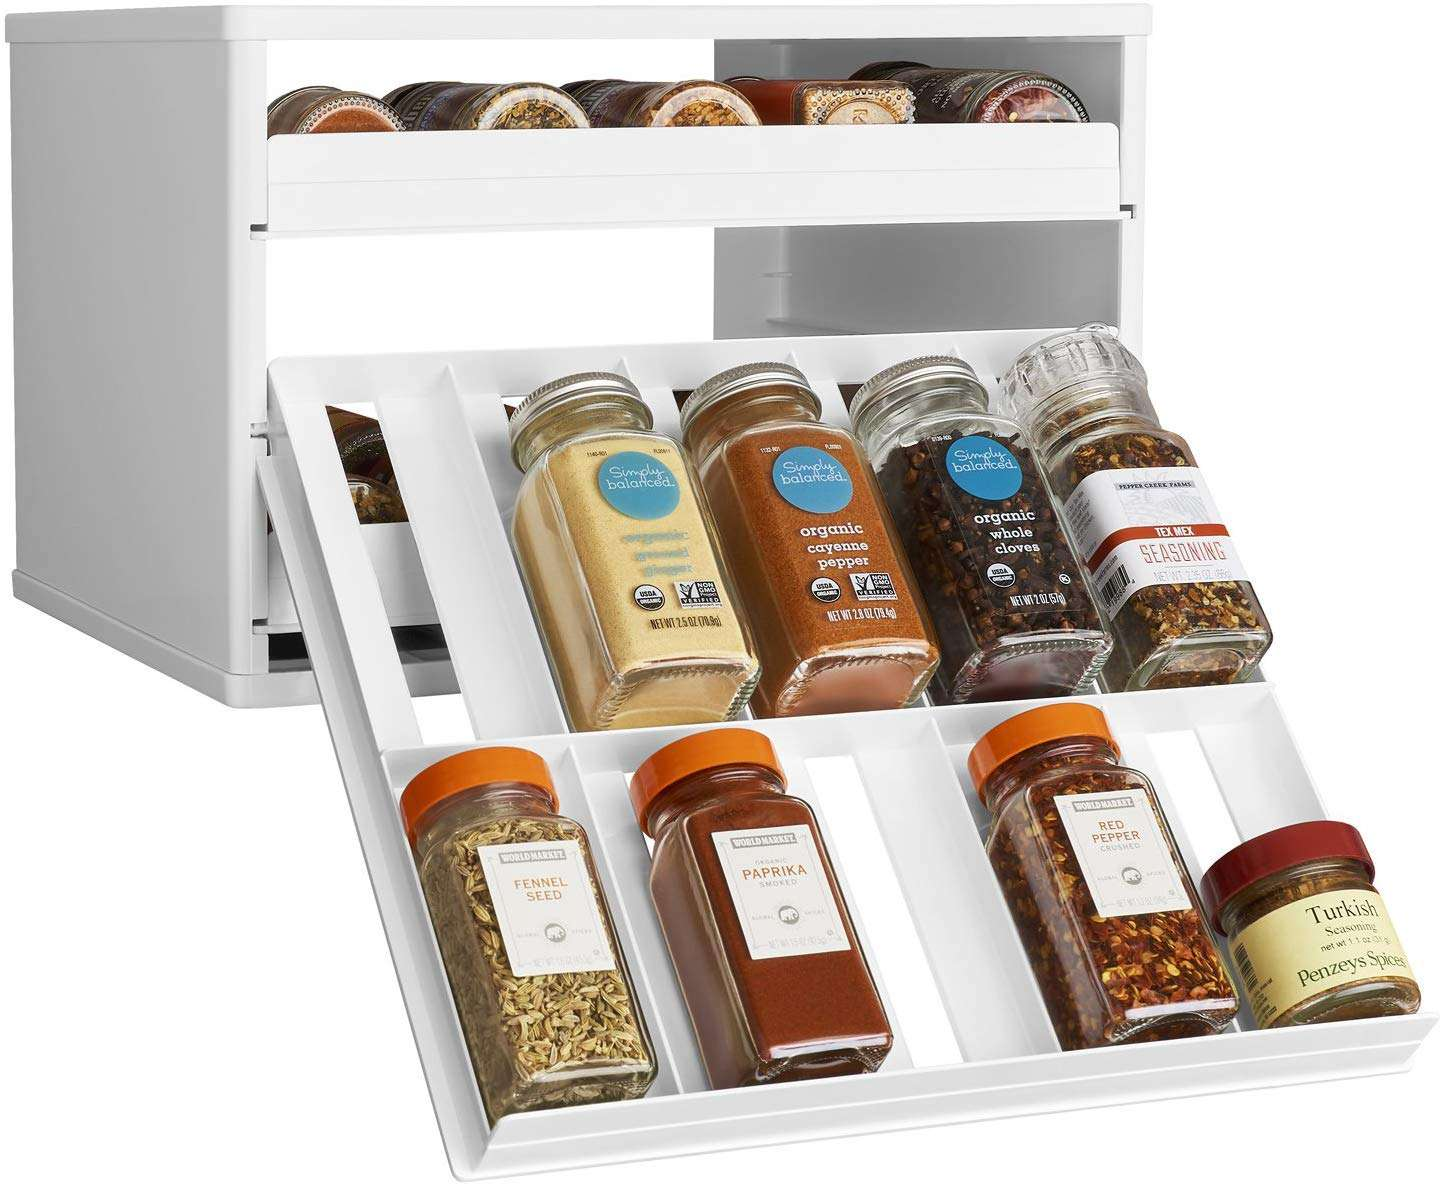 The 9 Best Spice Racks Of 2021